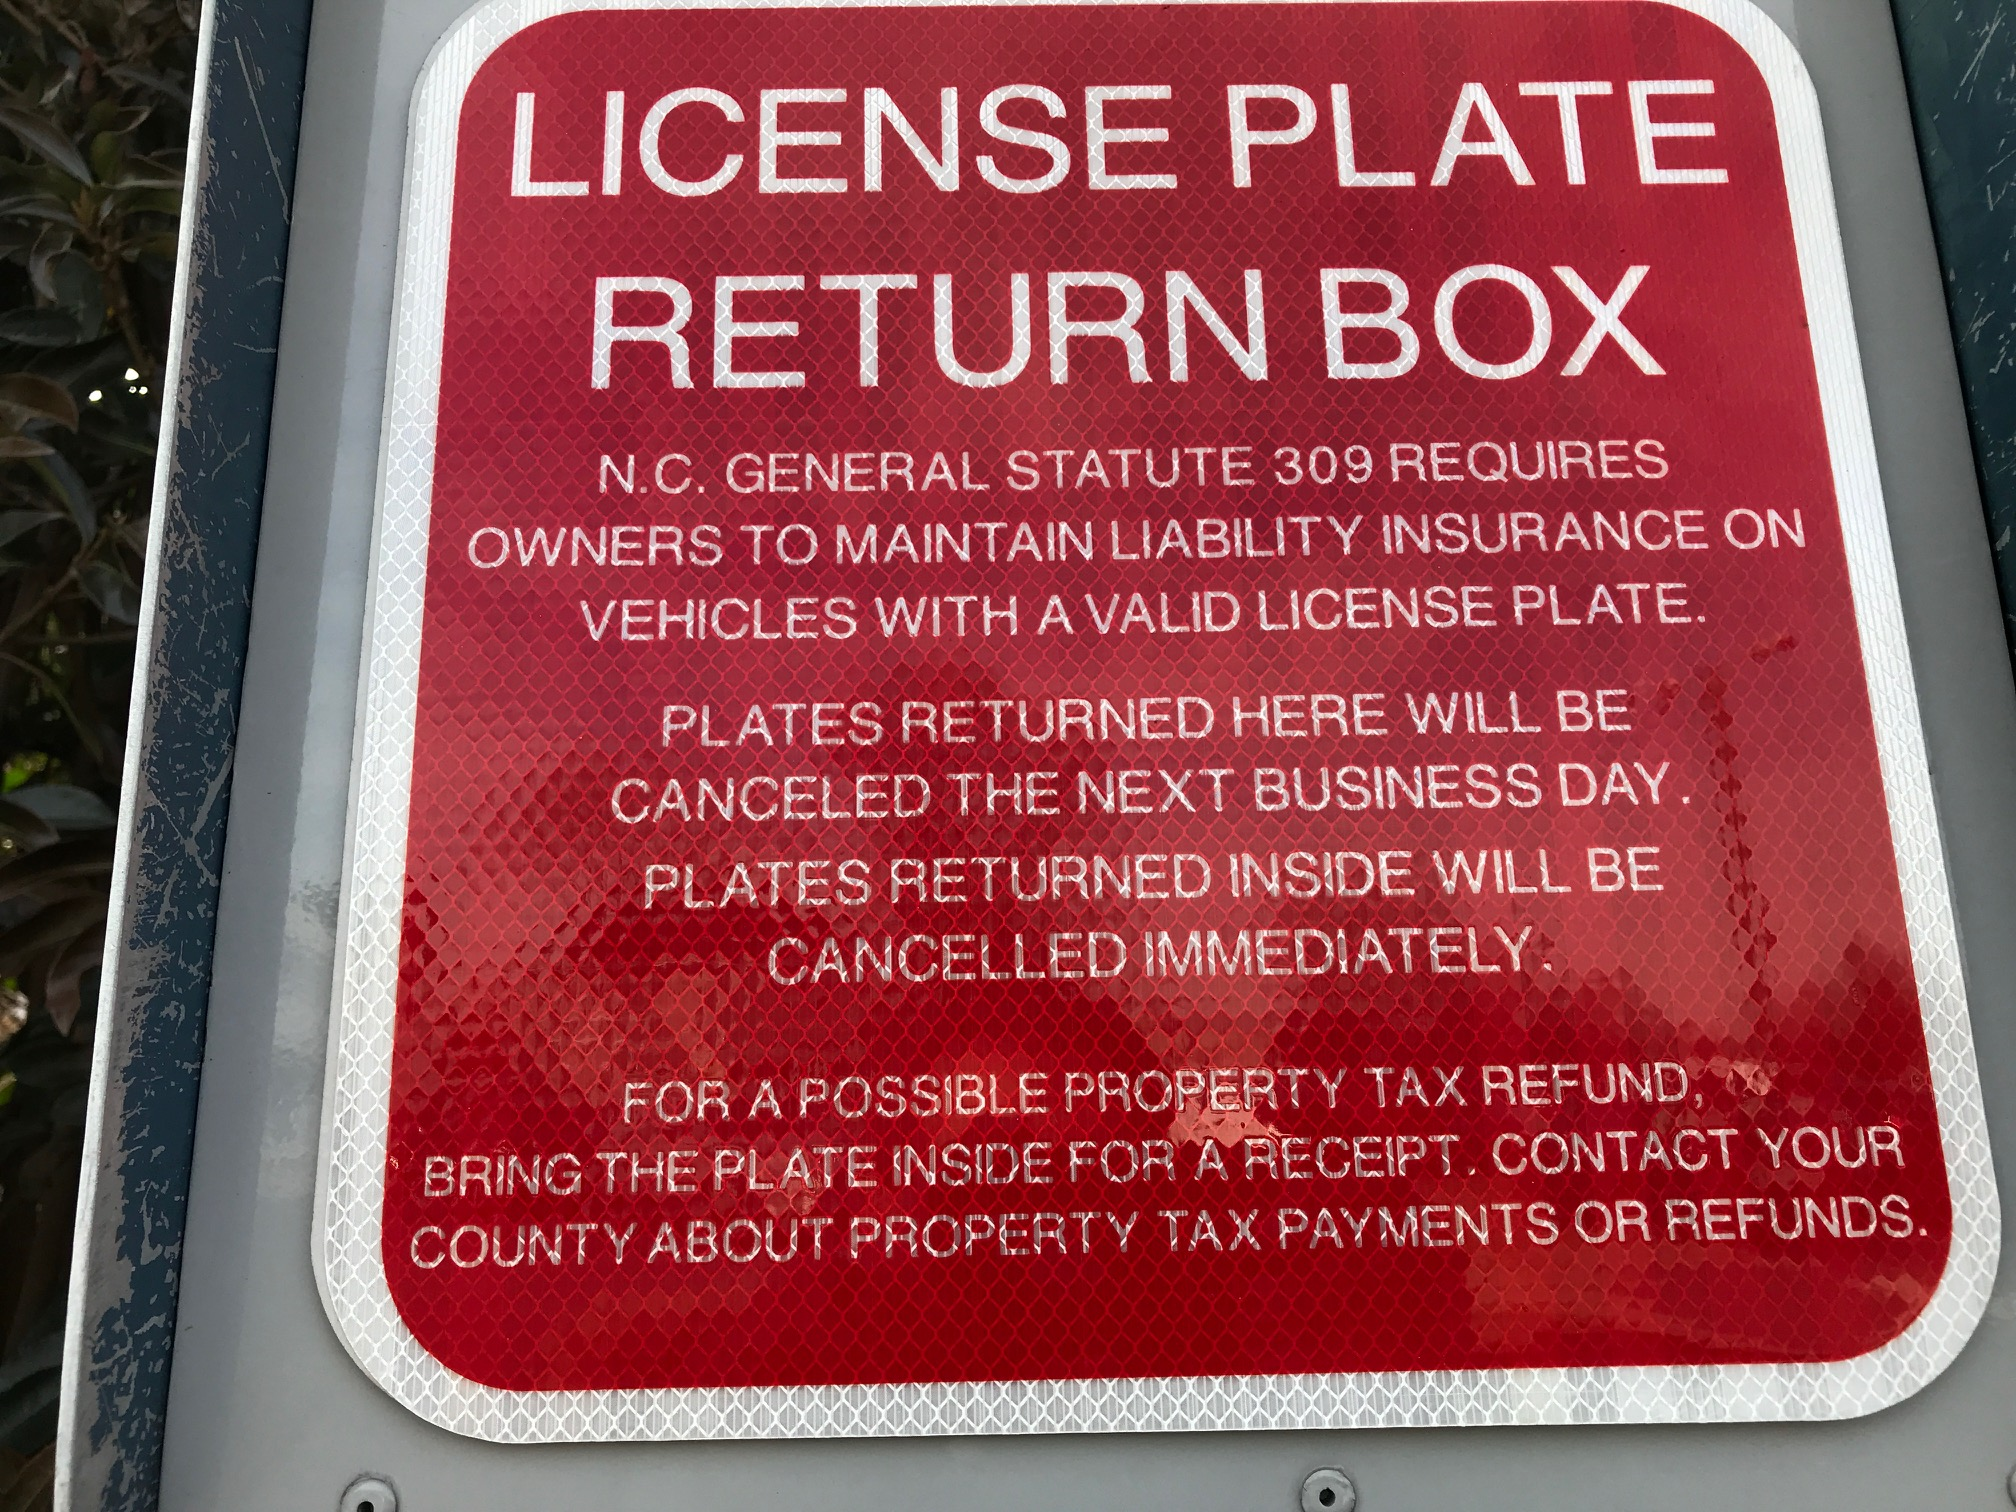 NCDMV updates license plate dropboxes to help you avoid fine